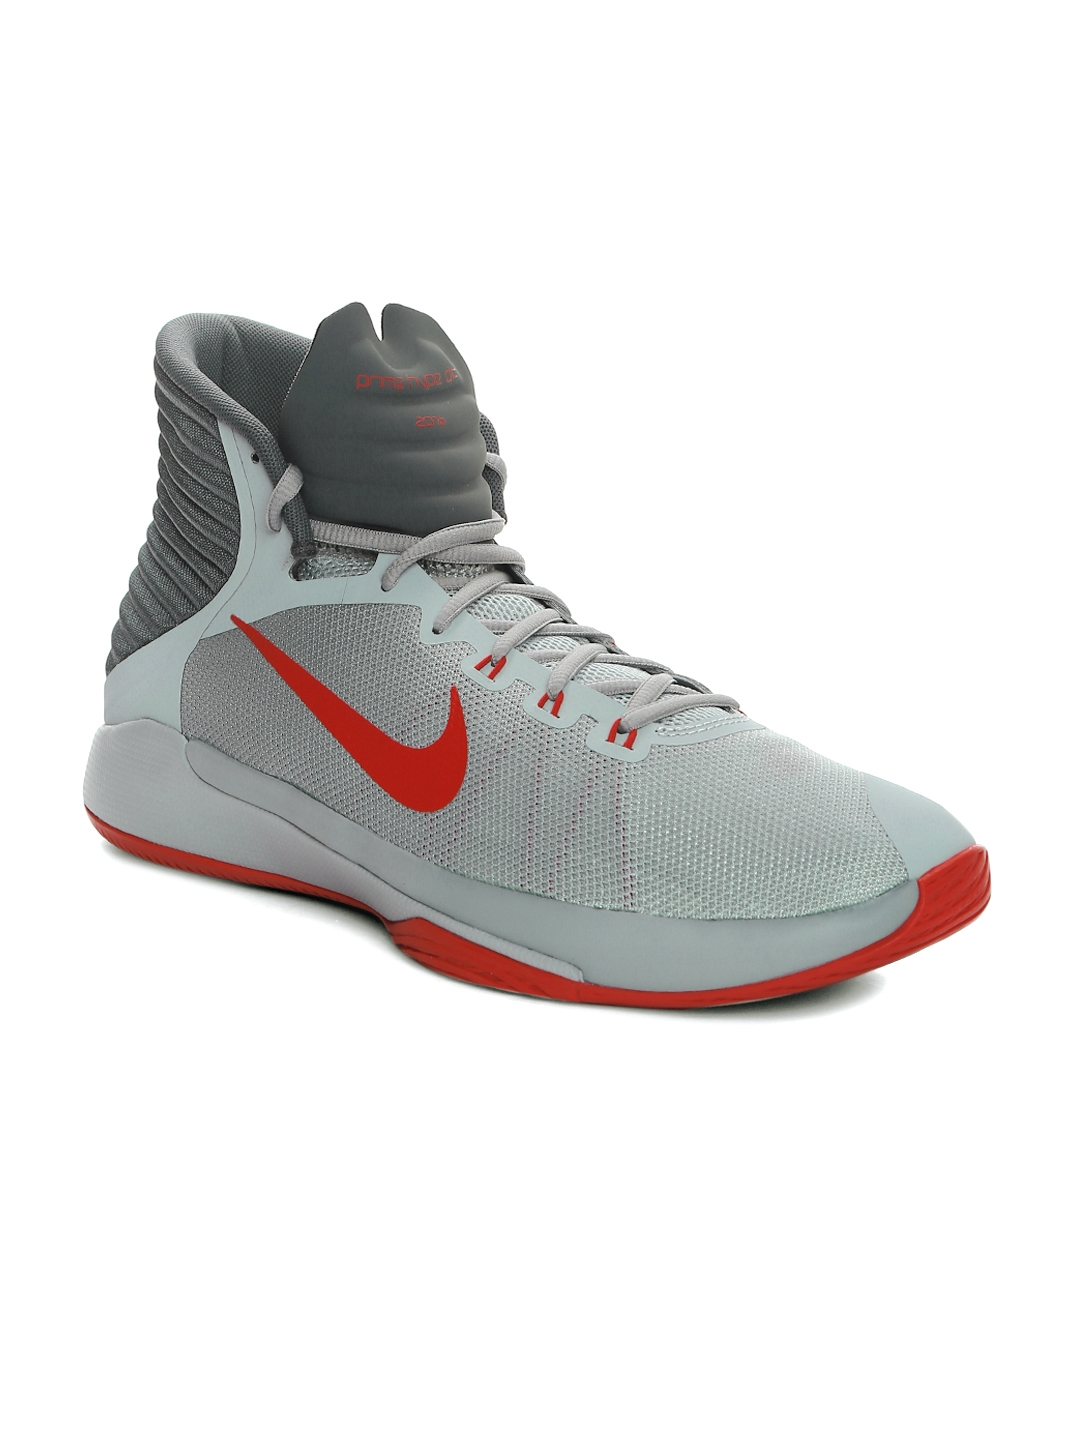 competitive price 0c577 ee0a1 Nike Men Grey Prime Hype DF 2016 Basketball Shoes